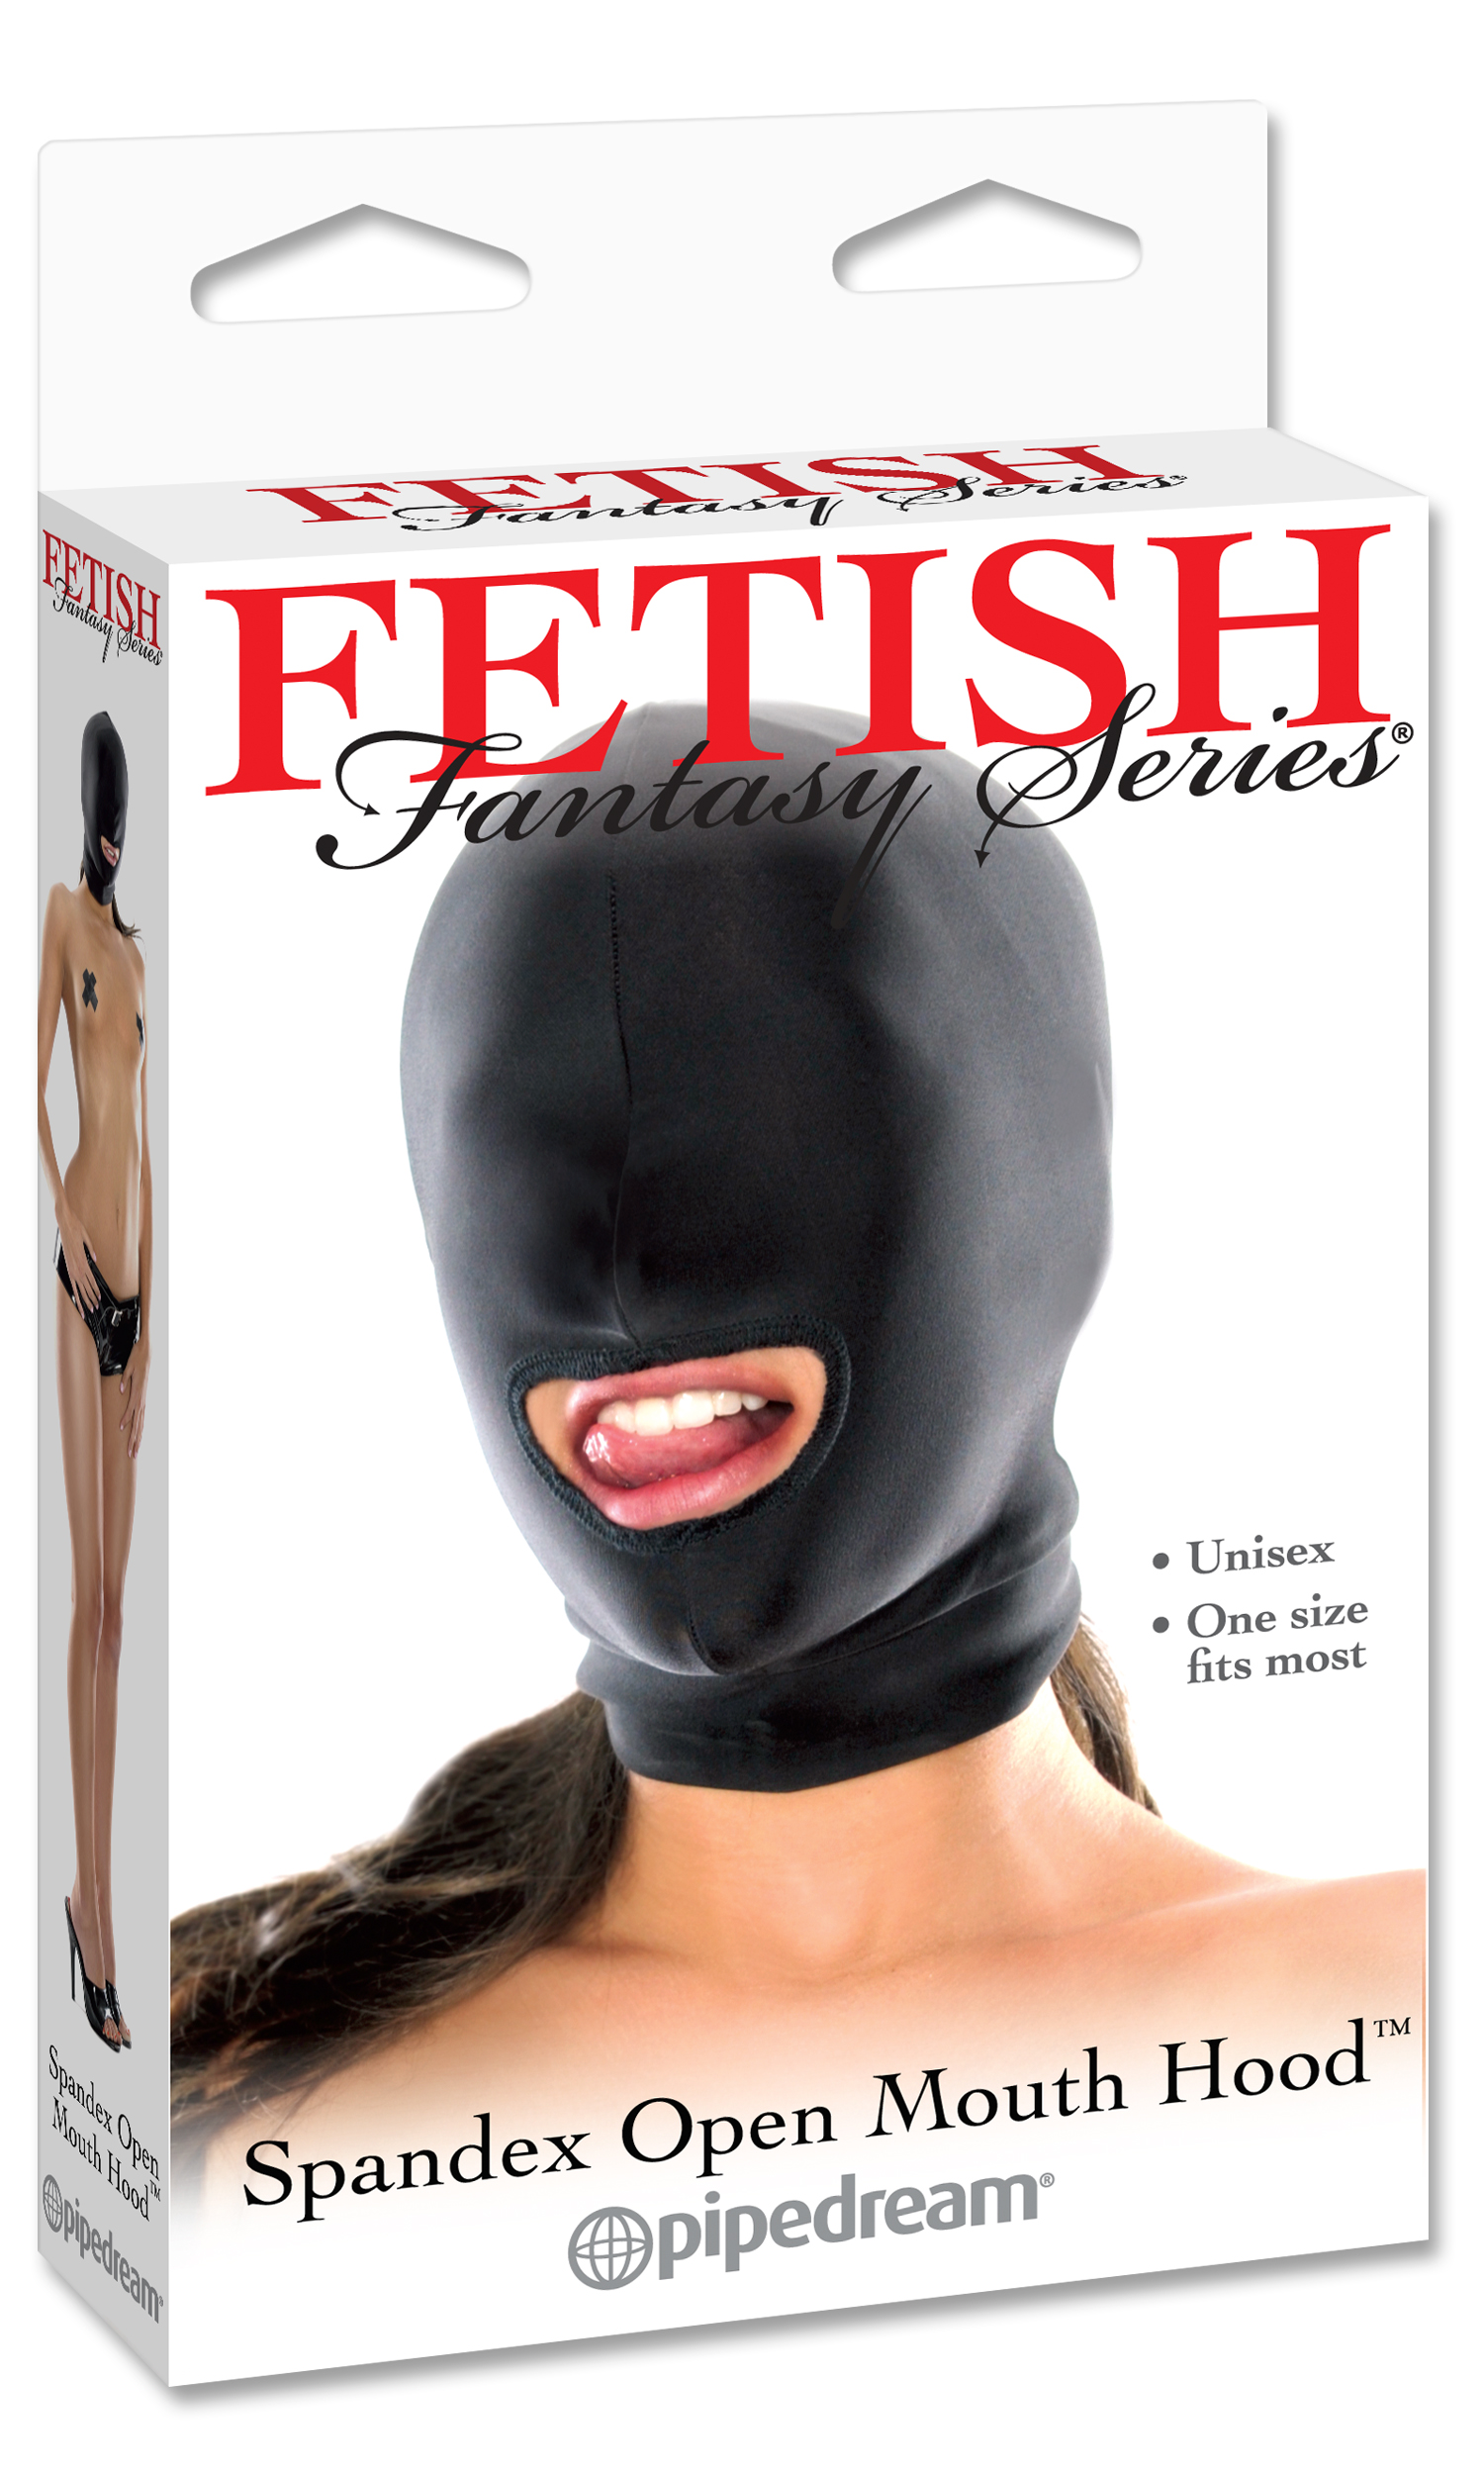 FETISH FANTASY SPANDEX OPEN MOUTH HOOD  - PD385502